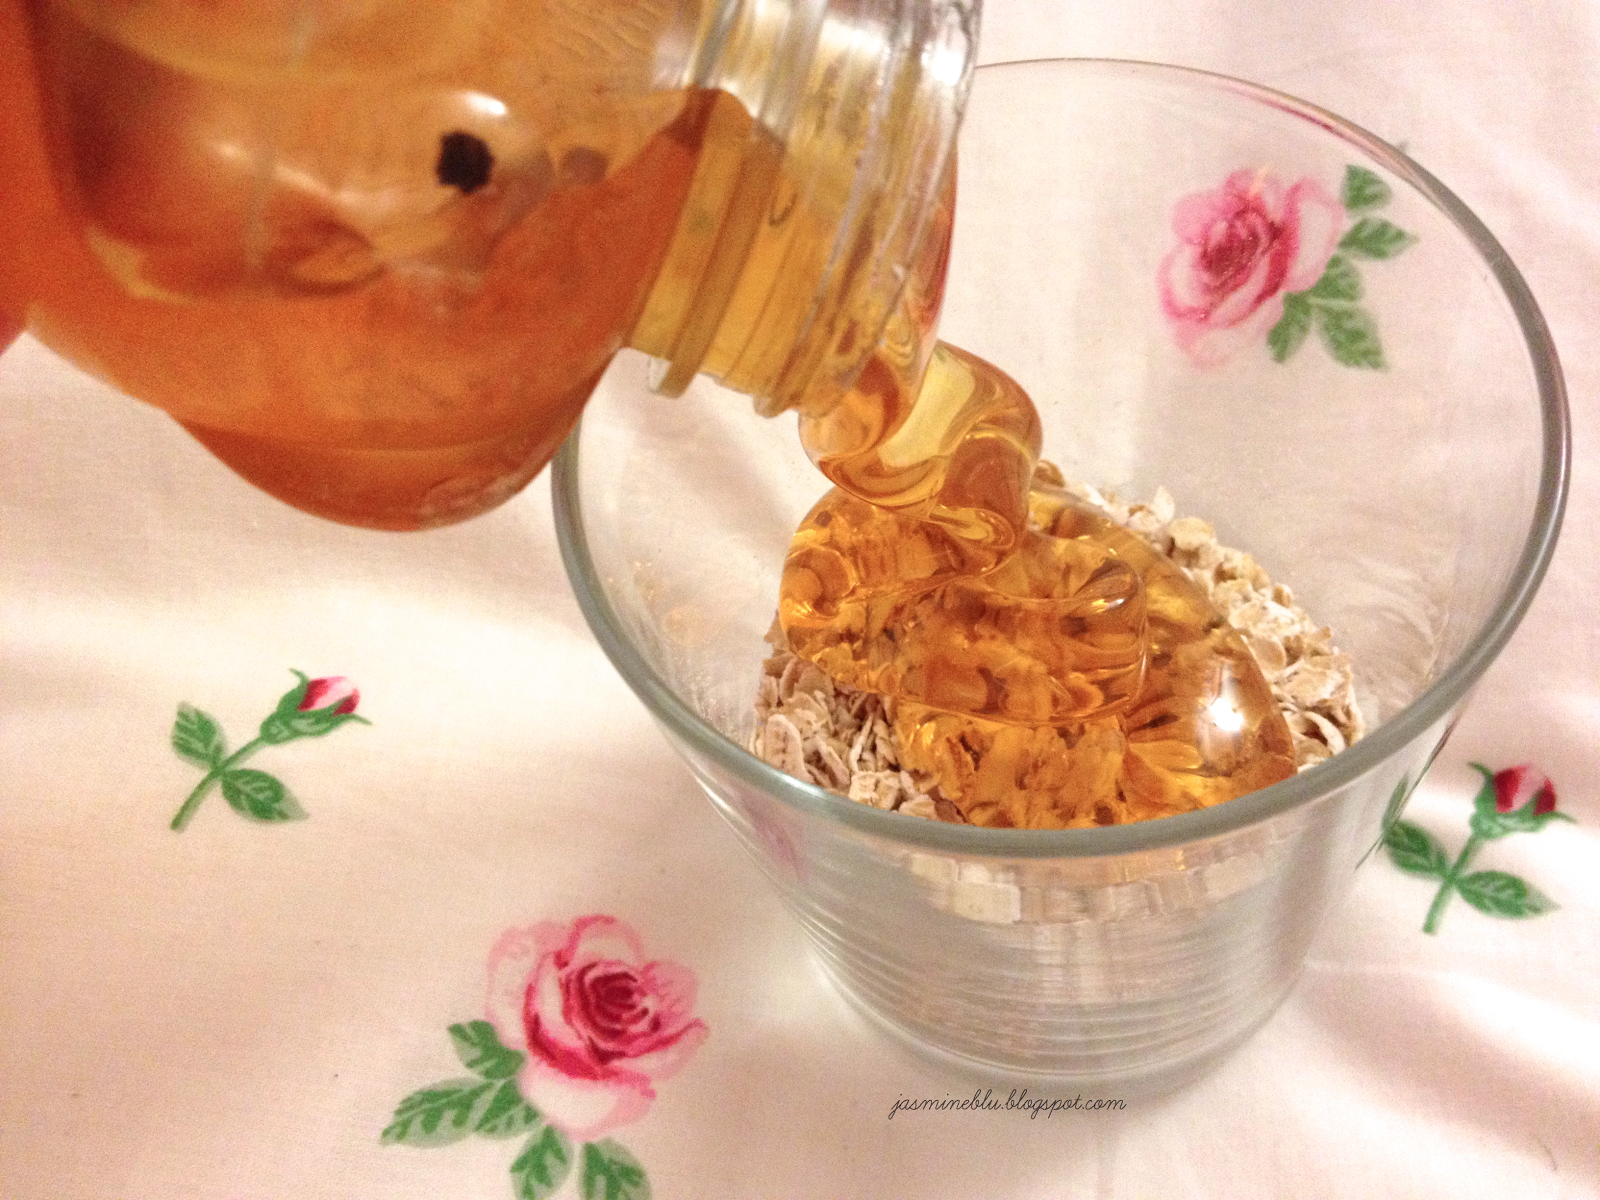 a girls guide to life ♡: diy honey and oatmeal mask for acne and